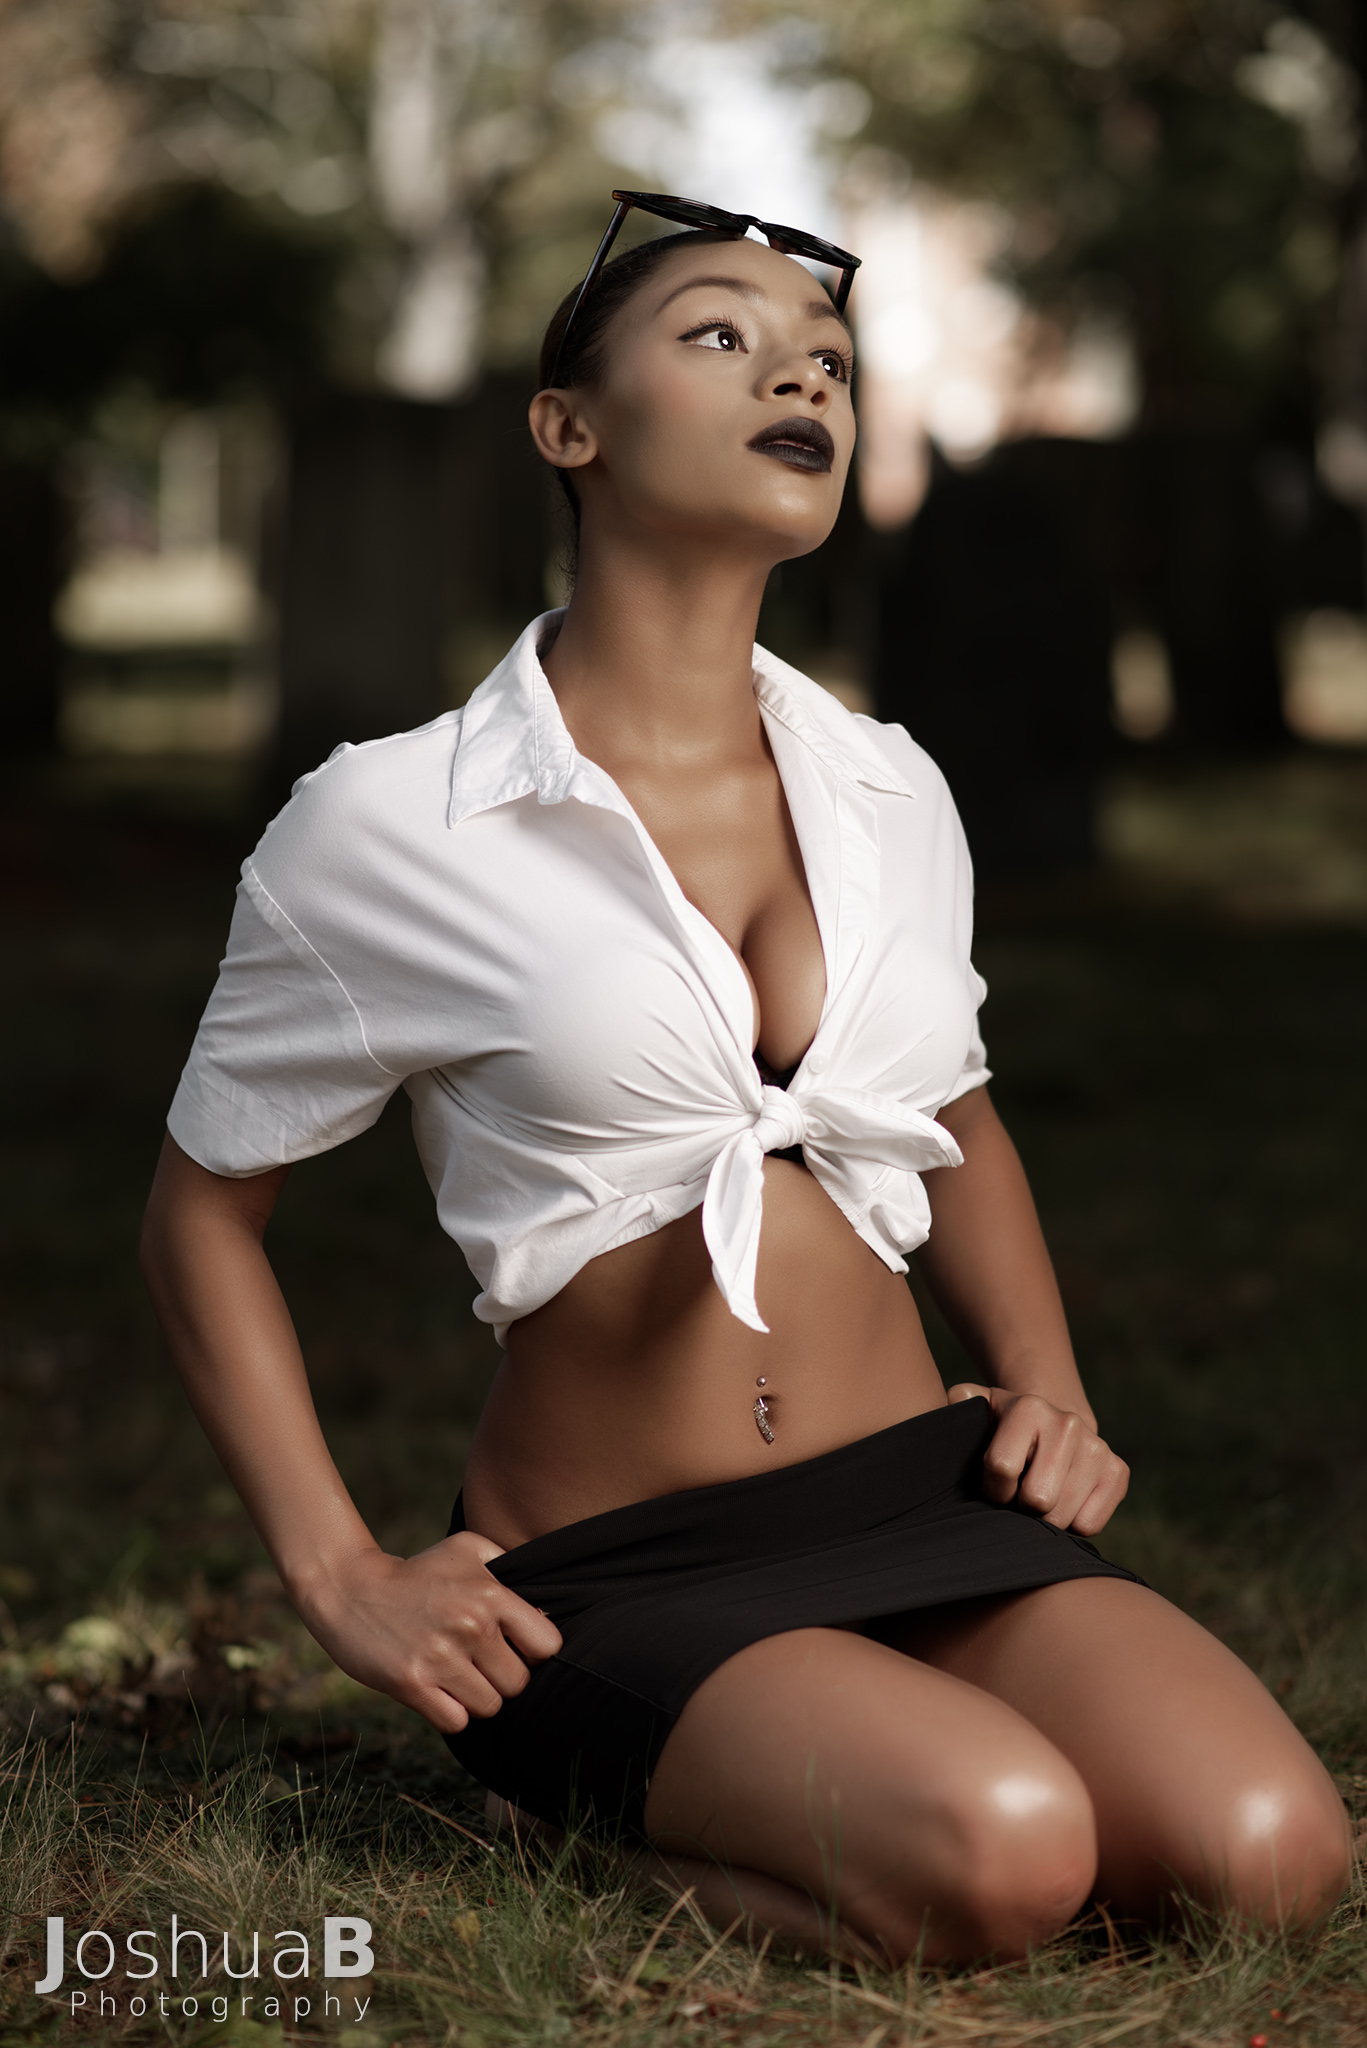 Beautiful Latina in sexy school girl Halloween outfit, looking up